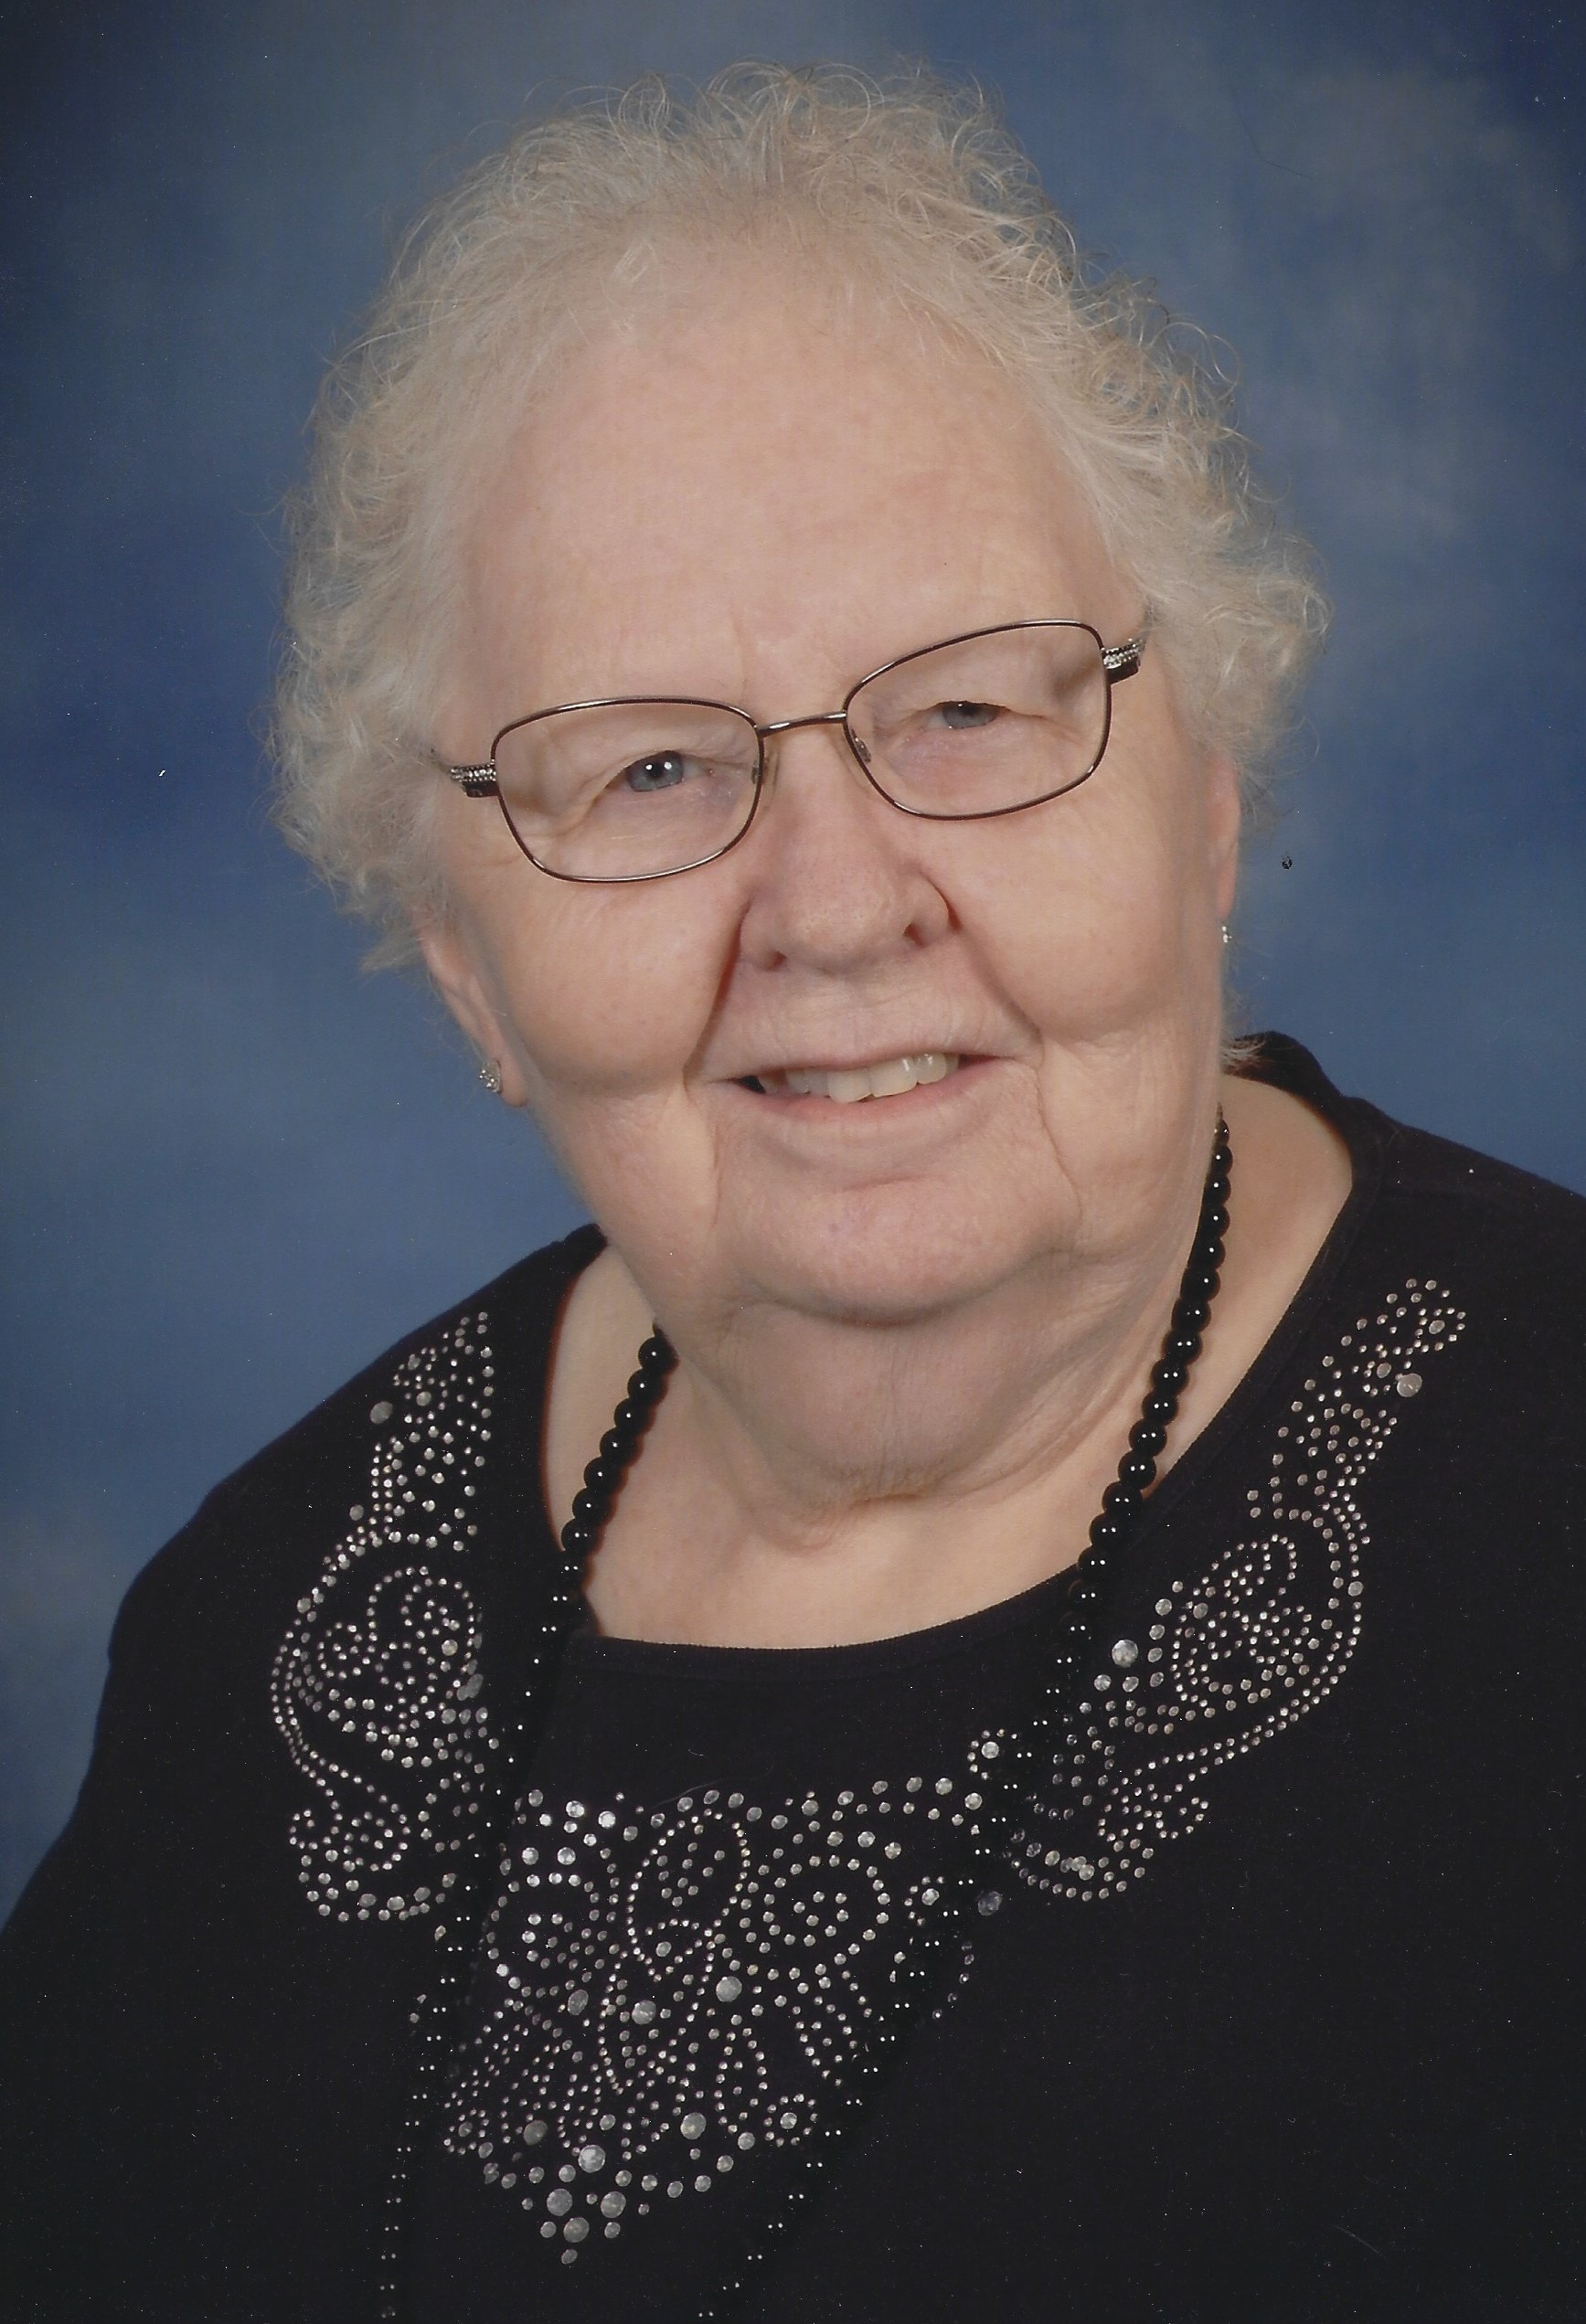 Meredith Corrine (Furry) Keep, age 83, of Arapahoe, formerly of Elm Creek